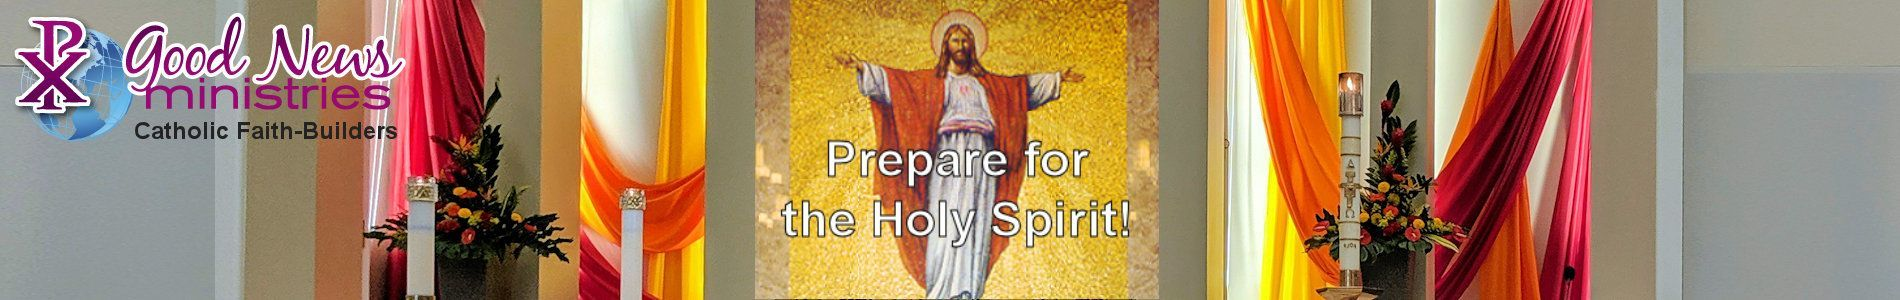 Holy-Spirit header